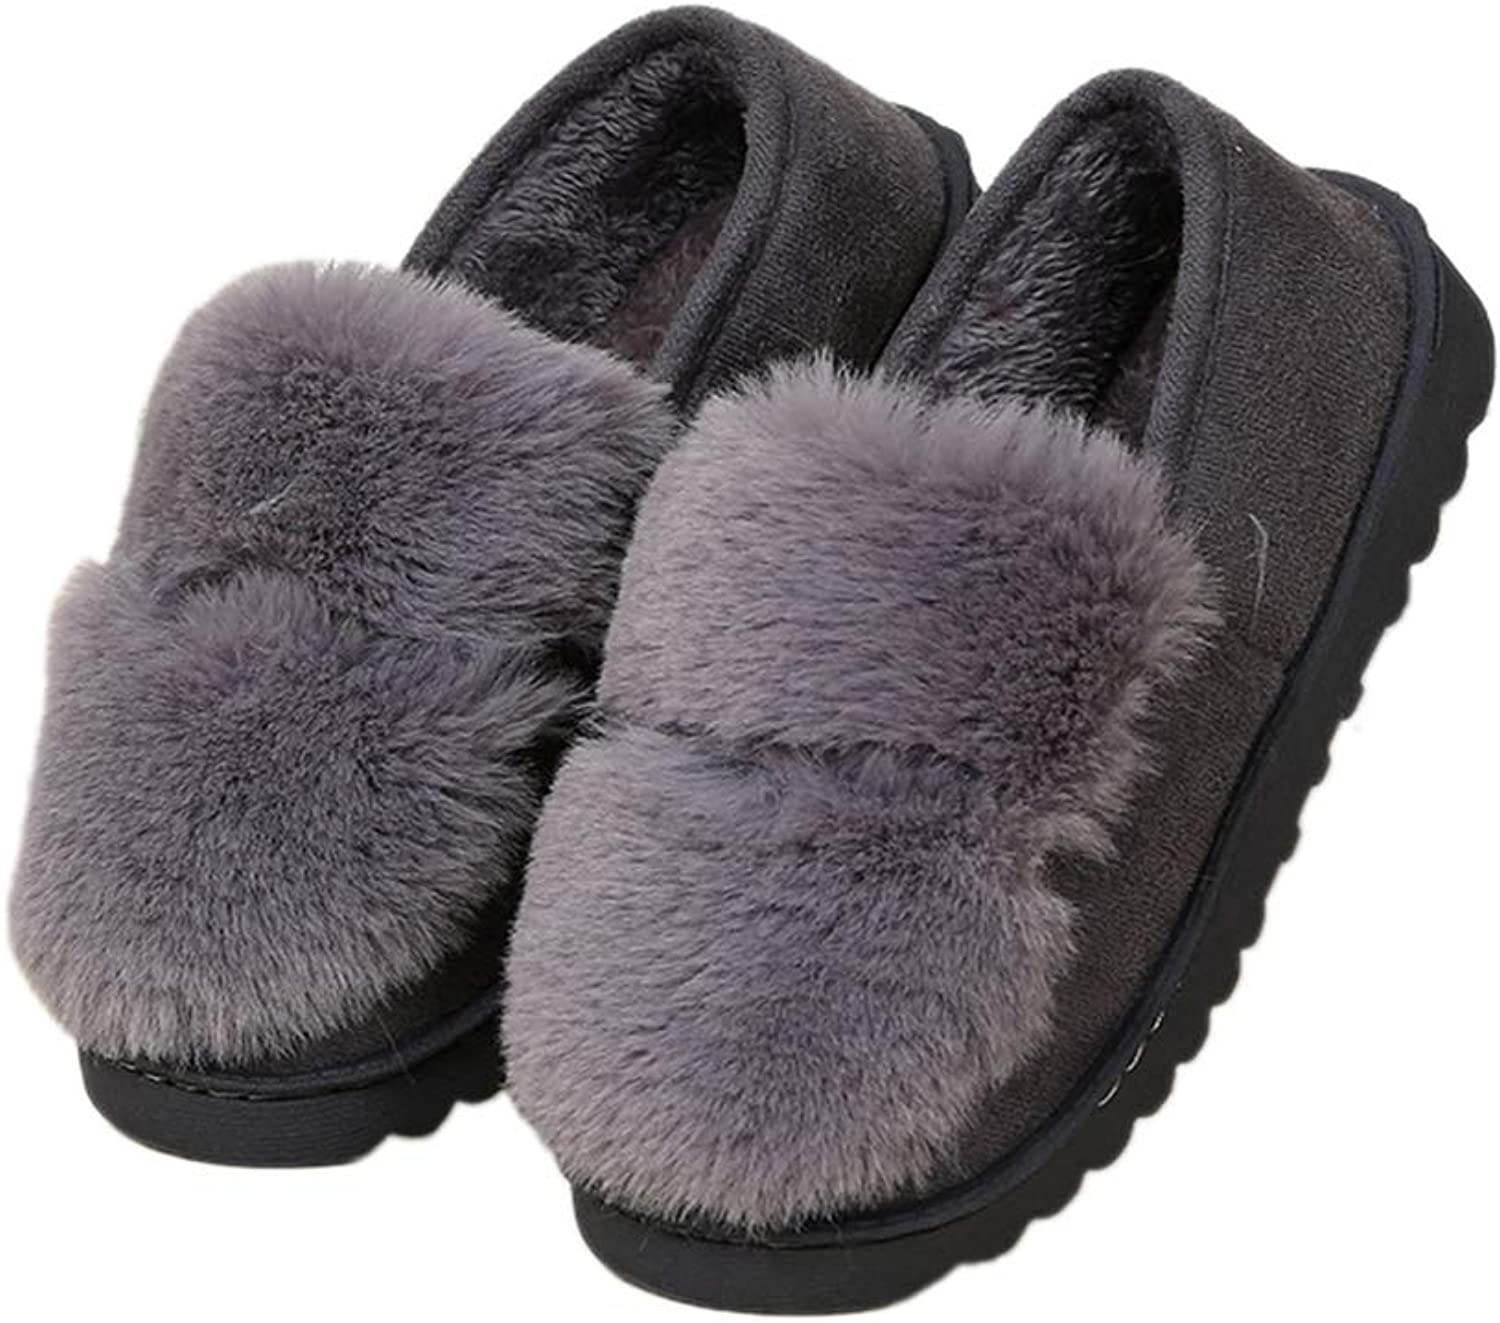 Nafanio Winter Women Slippers Fur Casual Cotton Warm Ladies Home Plush Indoor Footwear Moccasin shoes